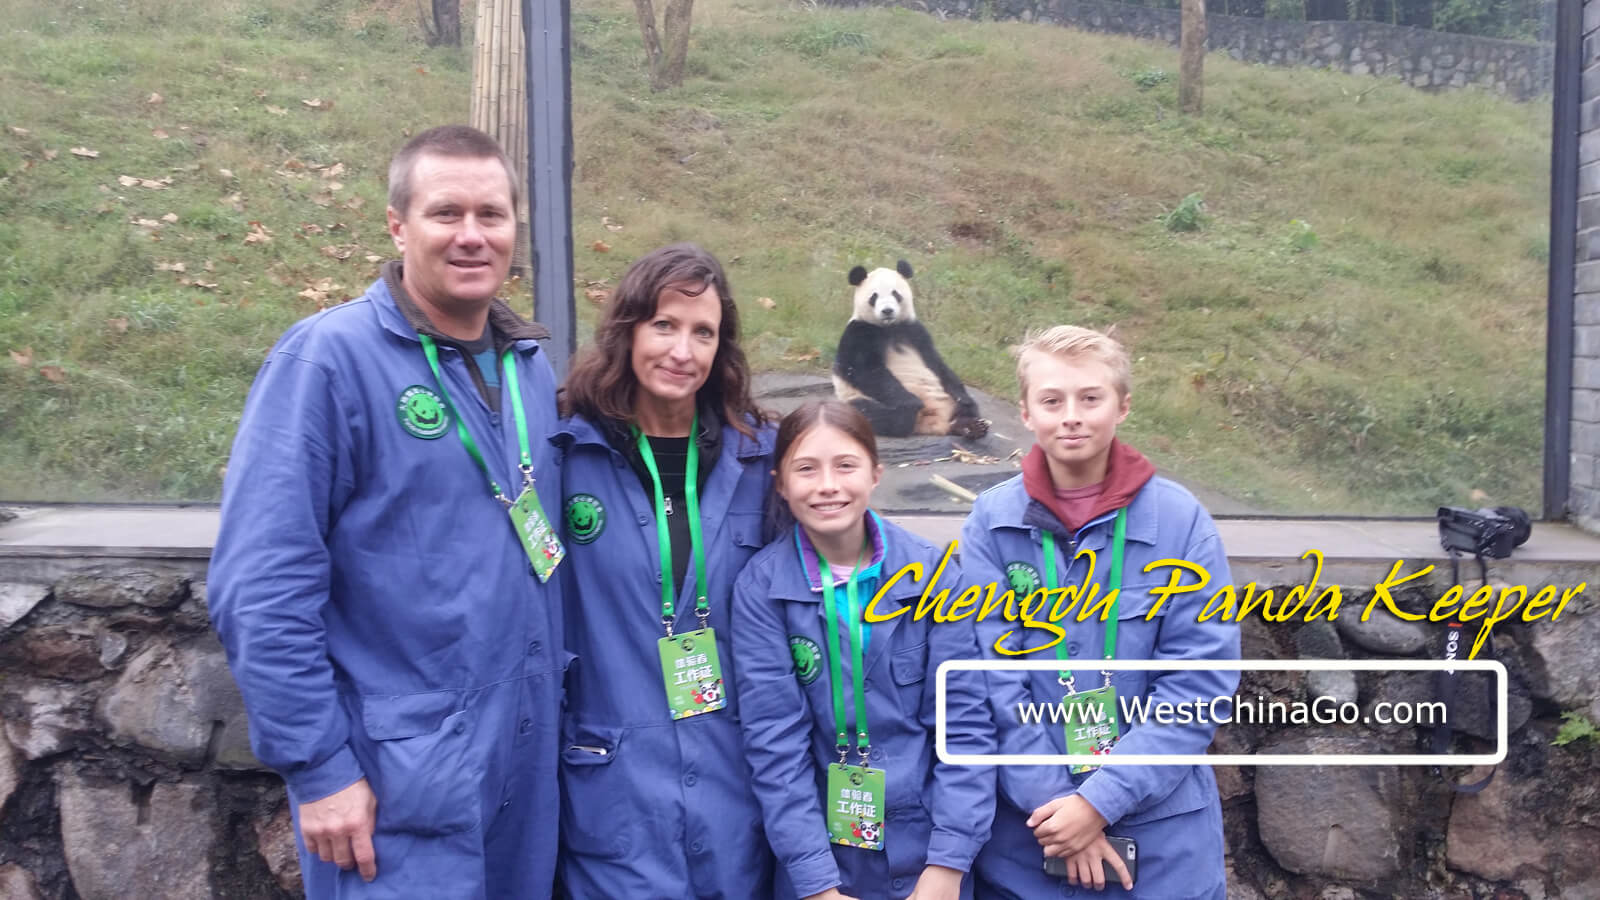 2018 How To Apply China Chengdu Panda Keeper